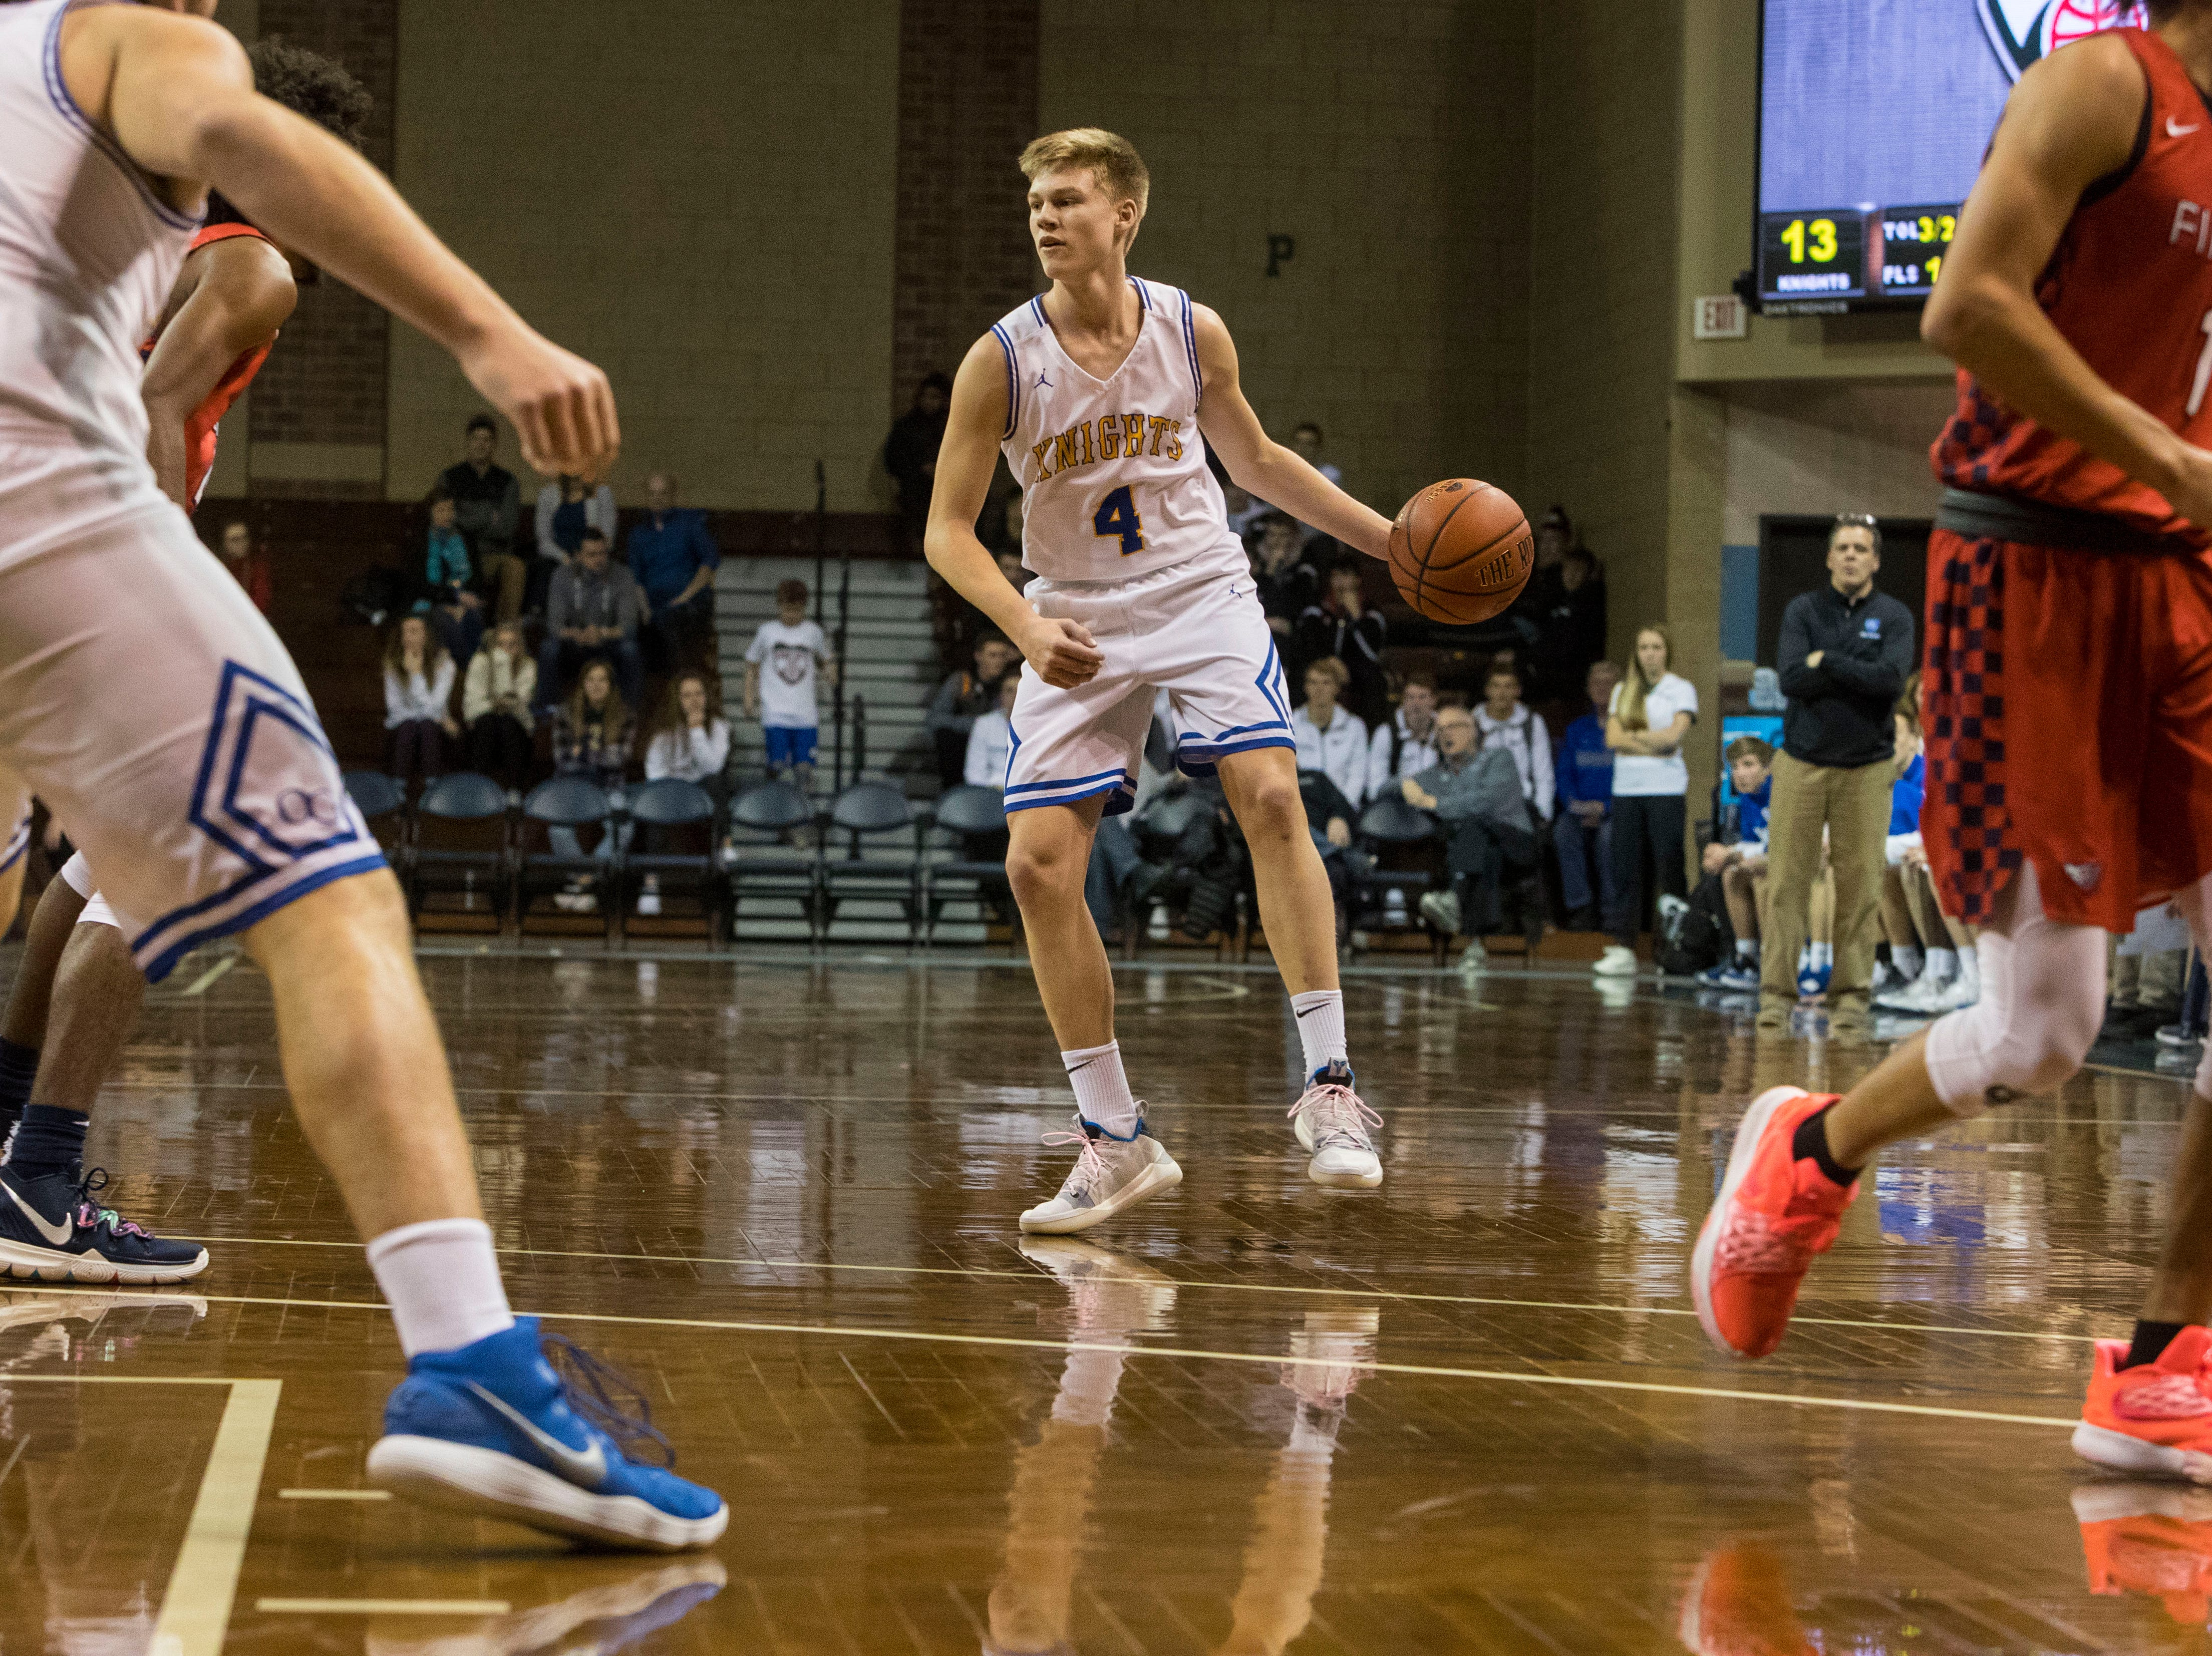 O'Gorman's Luke Ronsiek (4) dribbles the ball during a game against Findlay Prep at the Hoop City Classic at the Sanford Pentagon in Sioux Falls, S.D., Saturday, Dec. 29, 2018.